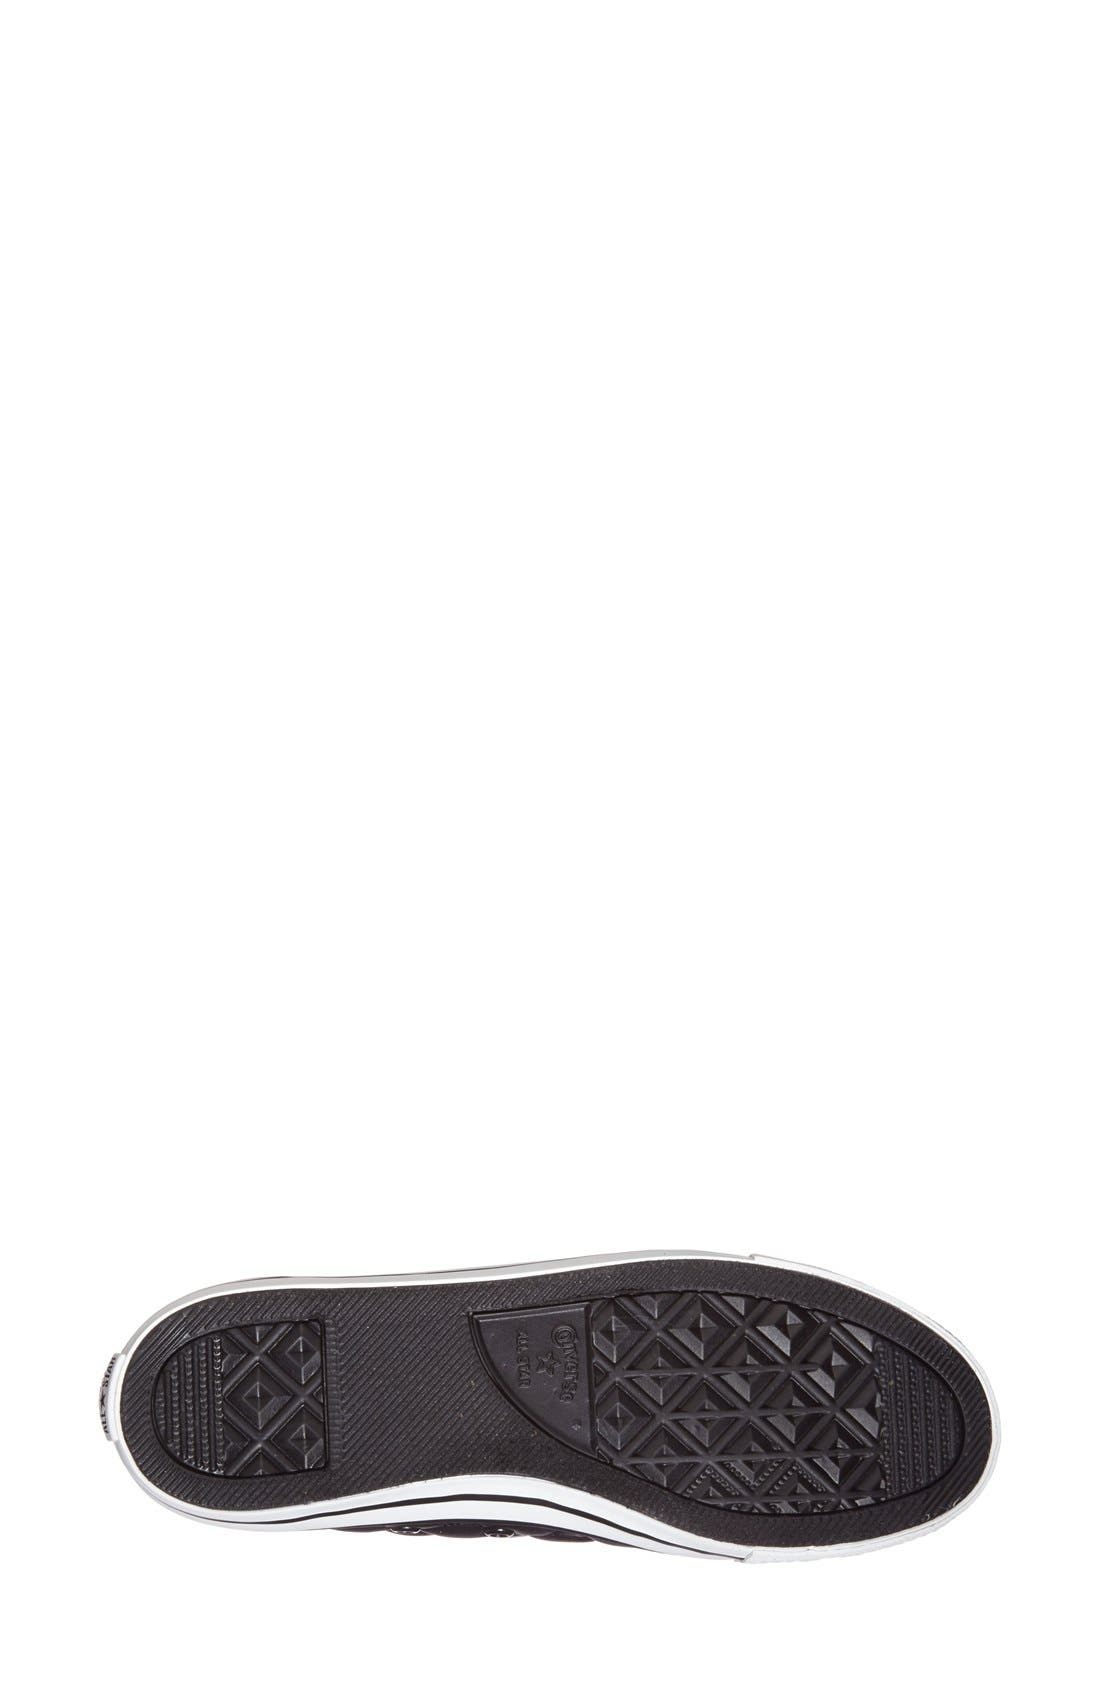 Alternate Image 4  - Converse Chuck Taylor® All Star® 'Dainty' Quilted Sneaker (Women)